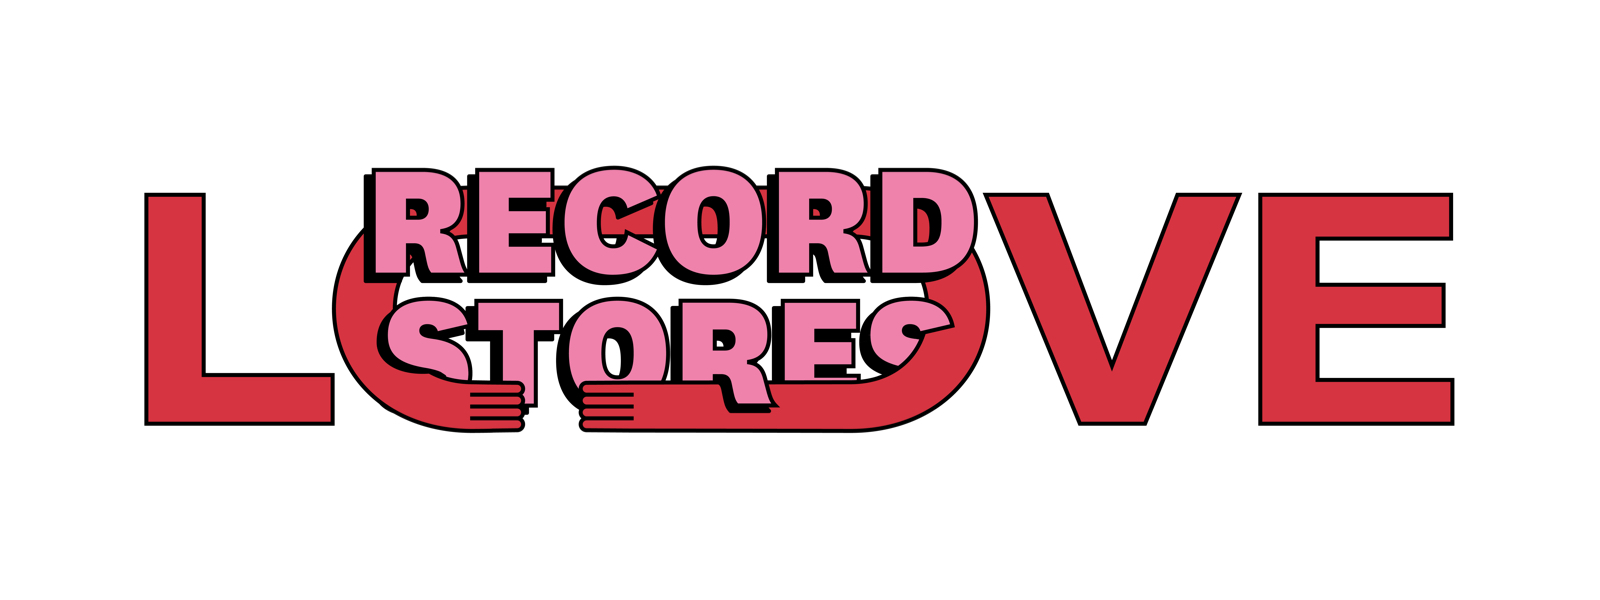 Here's What You Can Do To Spread the Record Store Love